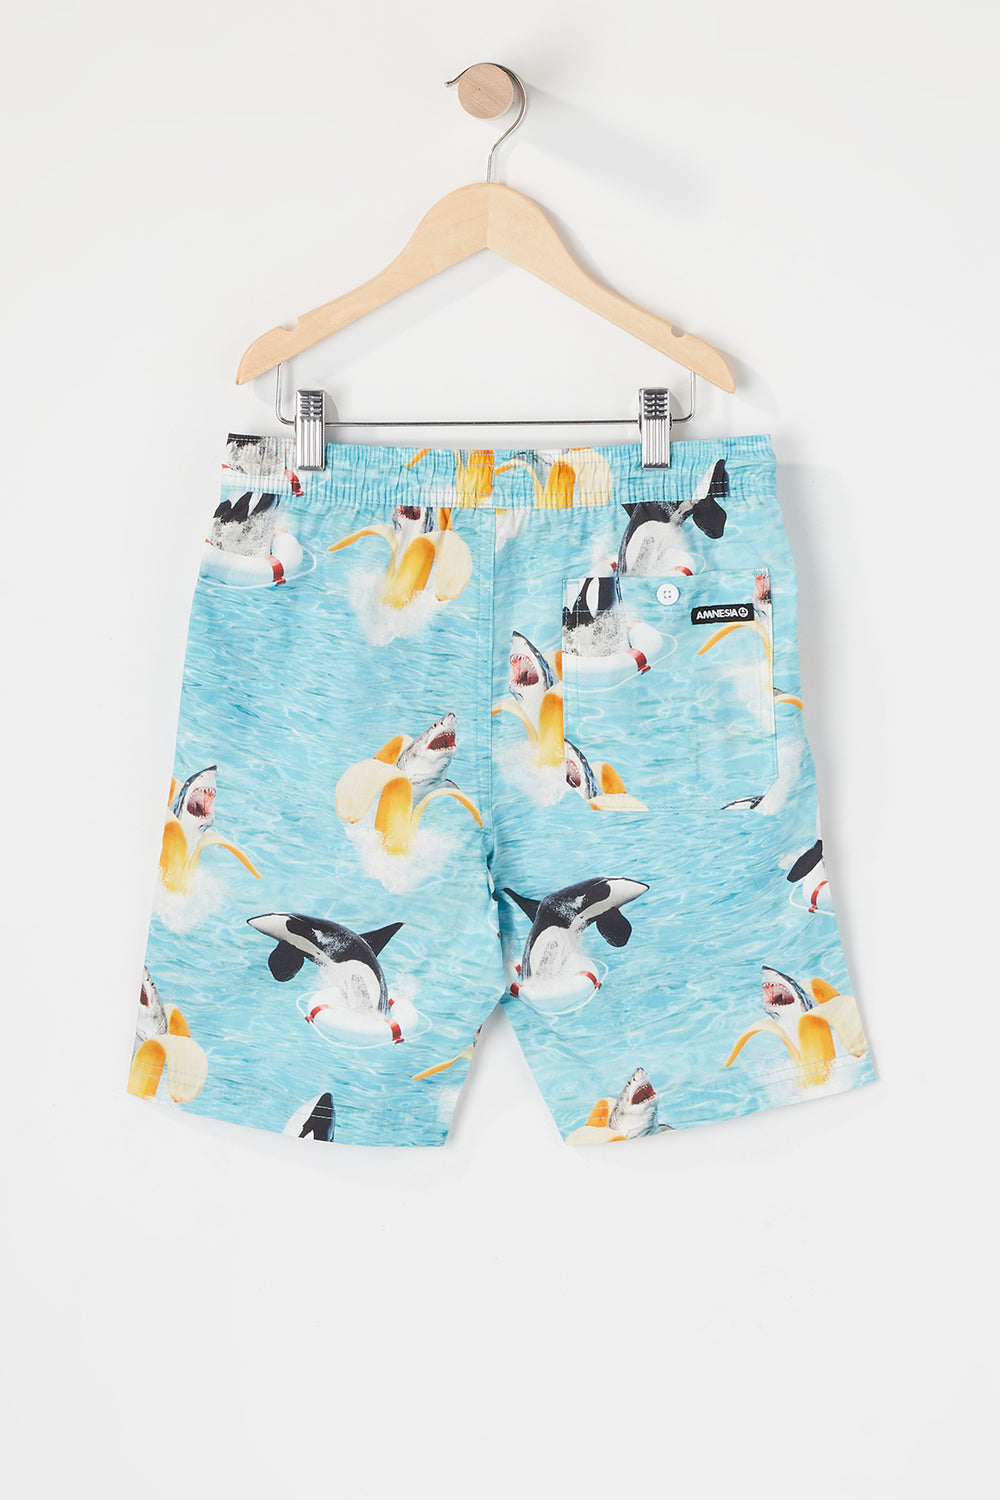 Short de Plage Requin Banane Amnesia Junior Bleu